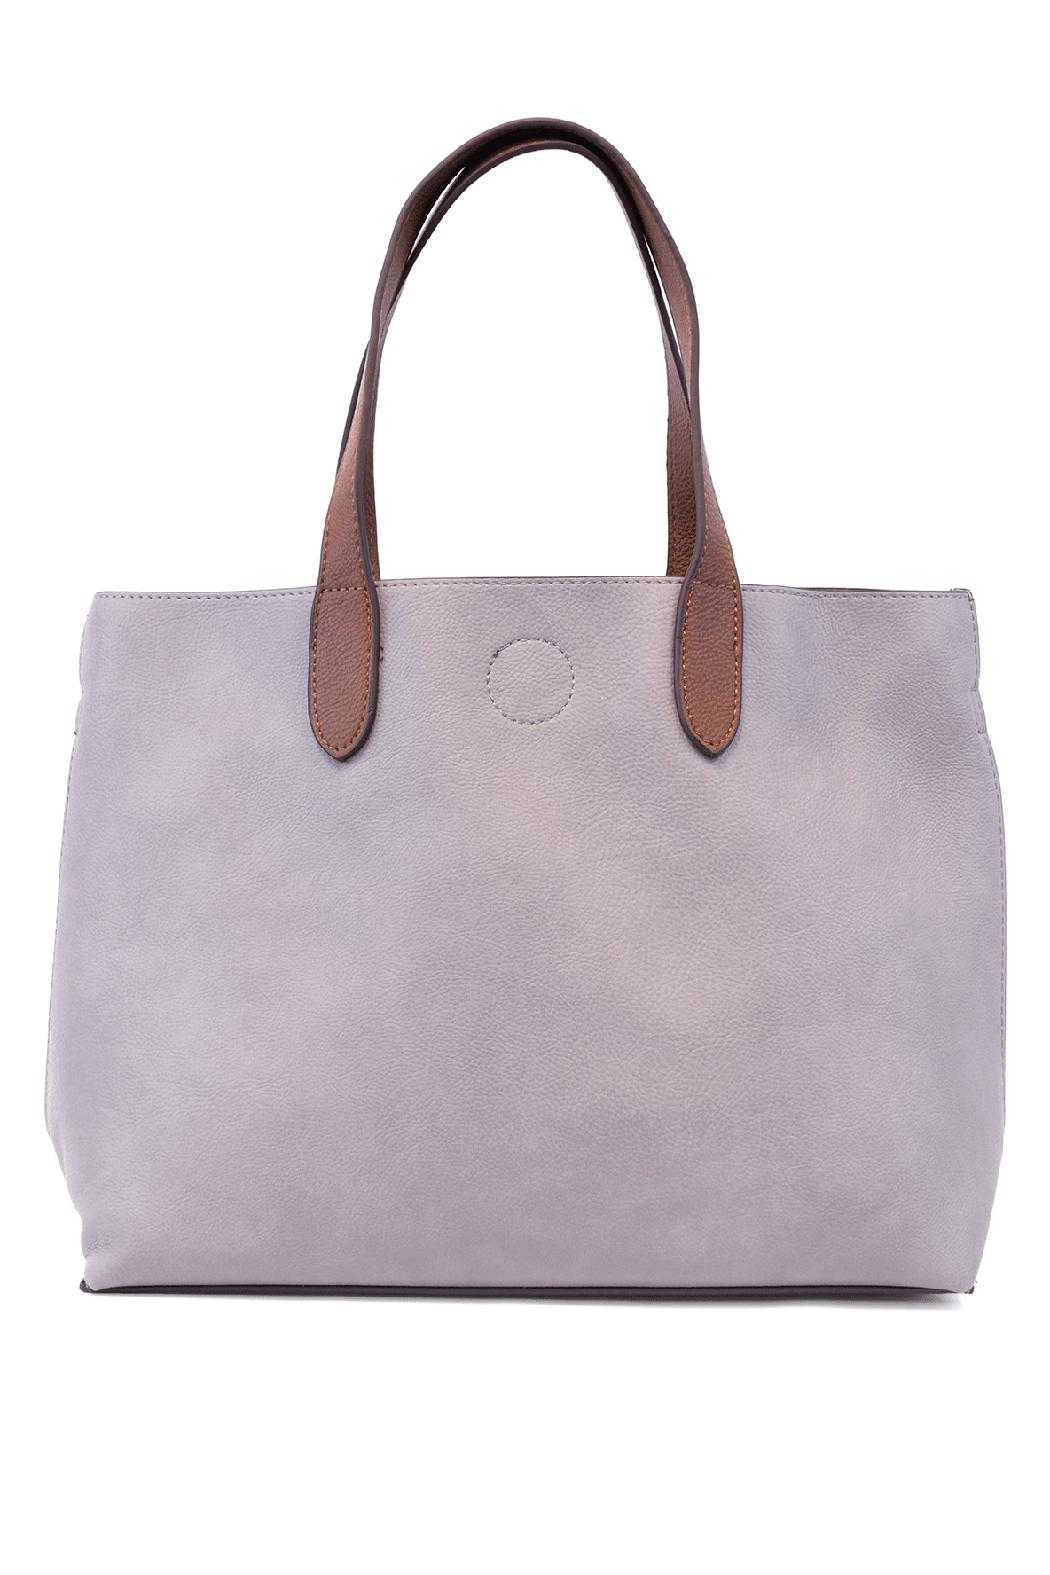 Joy Susan Accessories Mariah Convertible Tote - Front Cropped Image